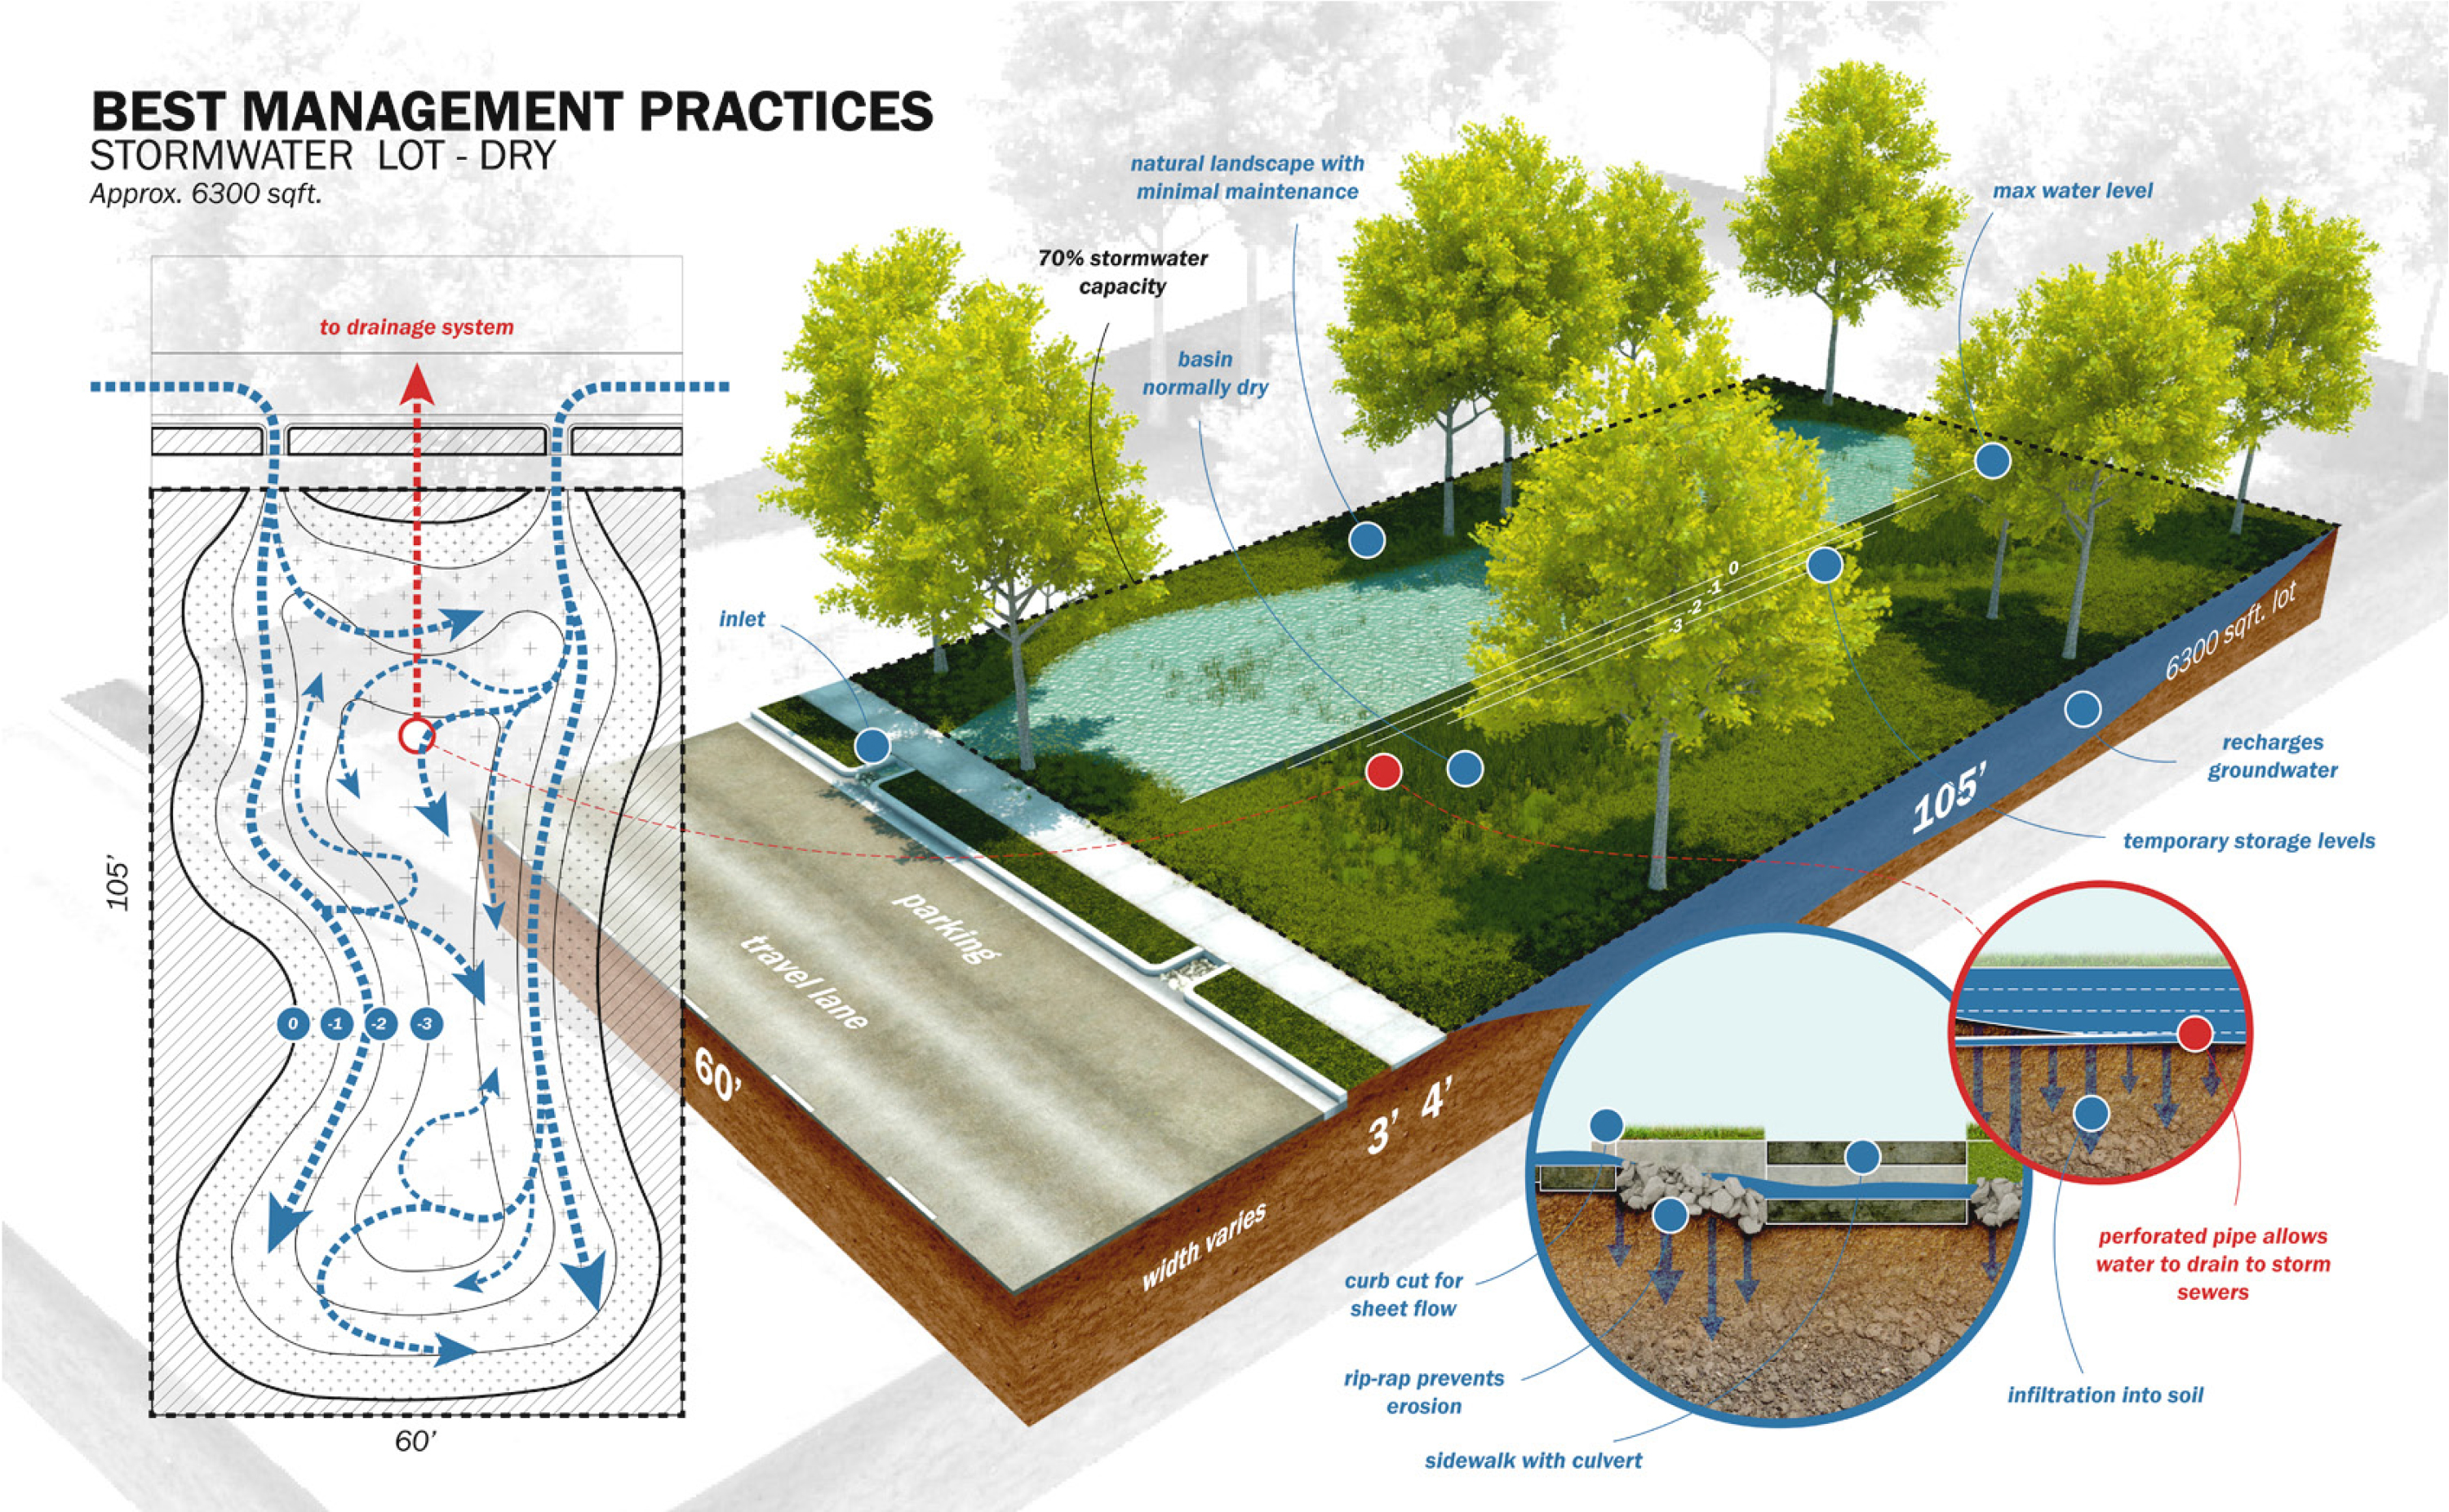 Water sensitive urban design tu delft ocw for Design of stormwater detention ponds